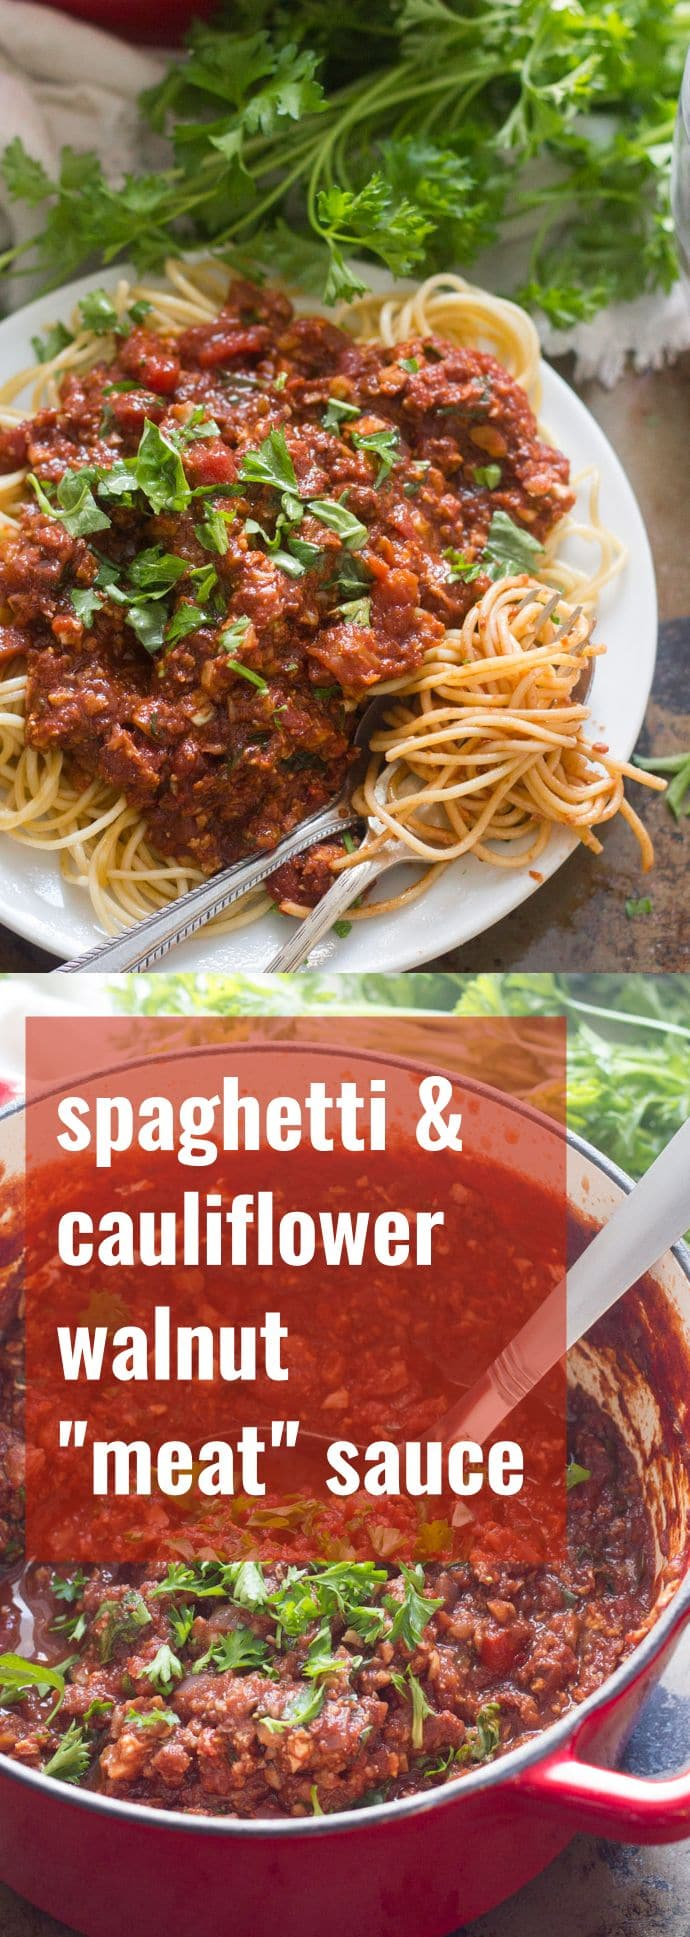 Spaghetti with Cauliflower Walnut Meat Sauce